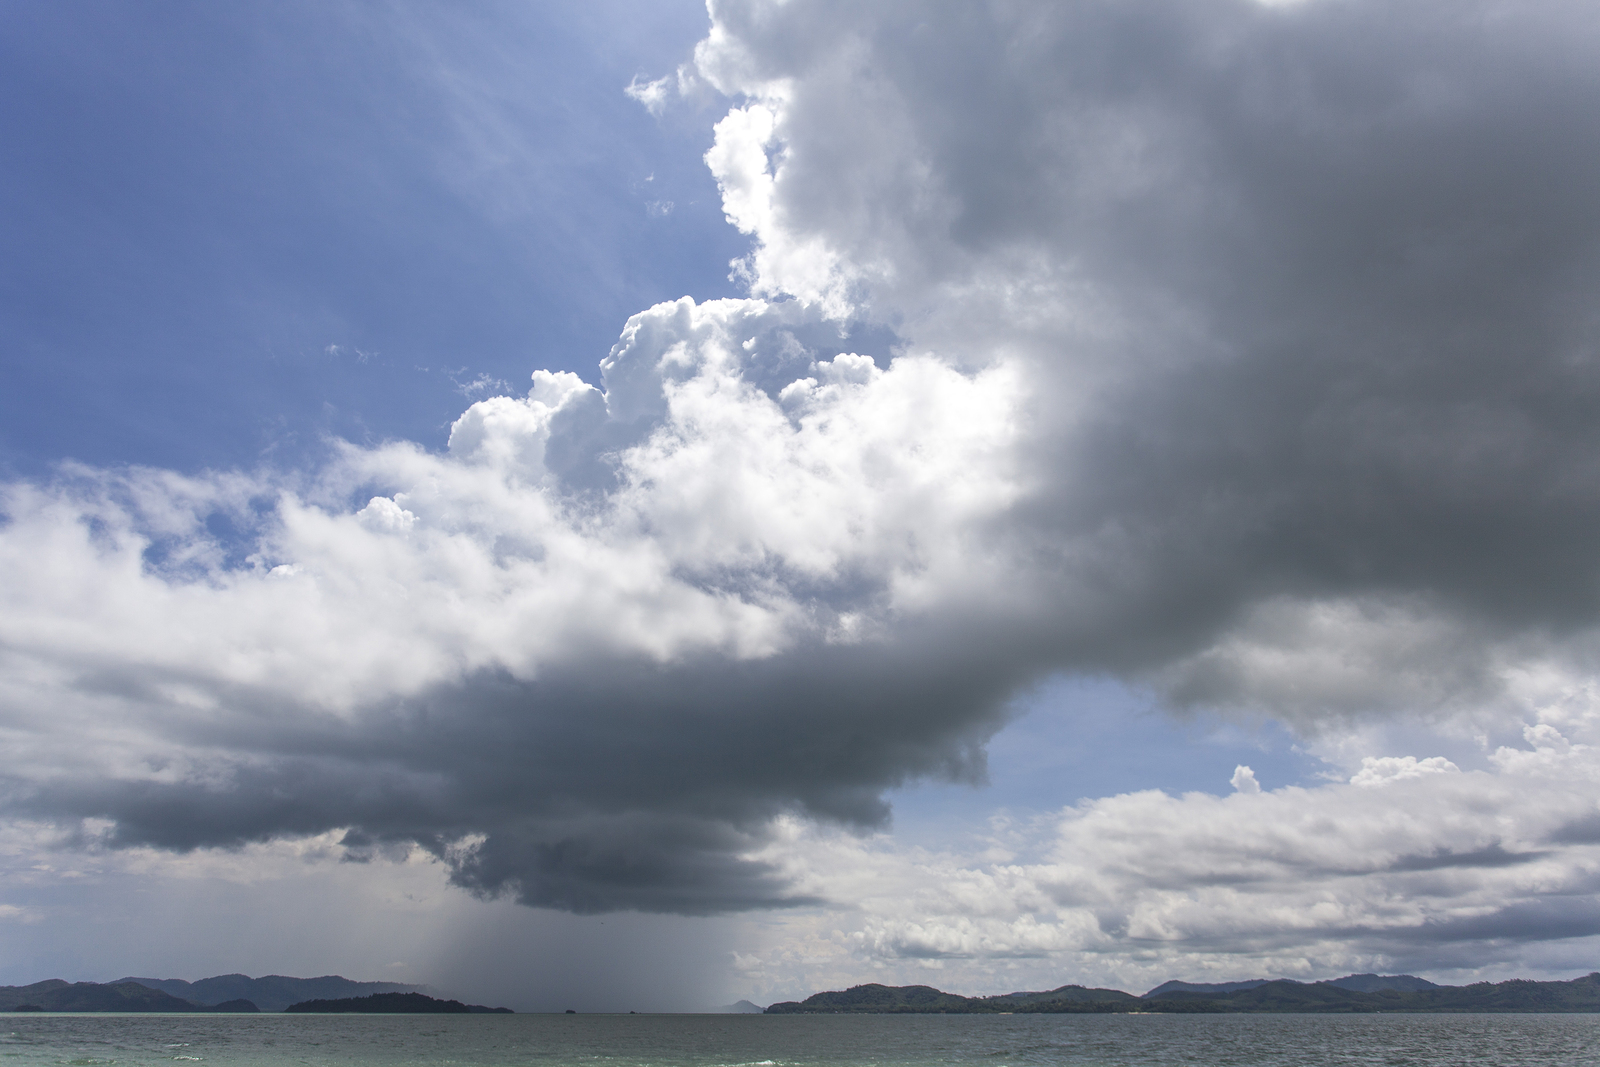 rain clouds and rain on Phuket island in Thailand.